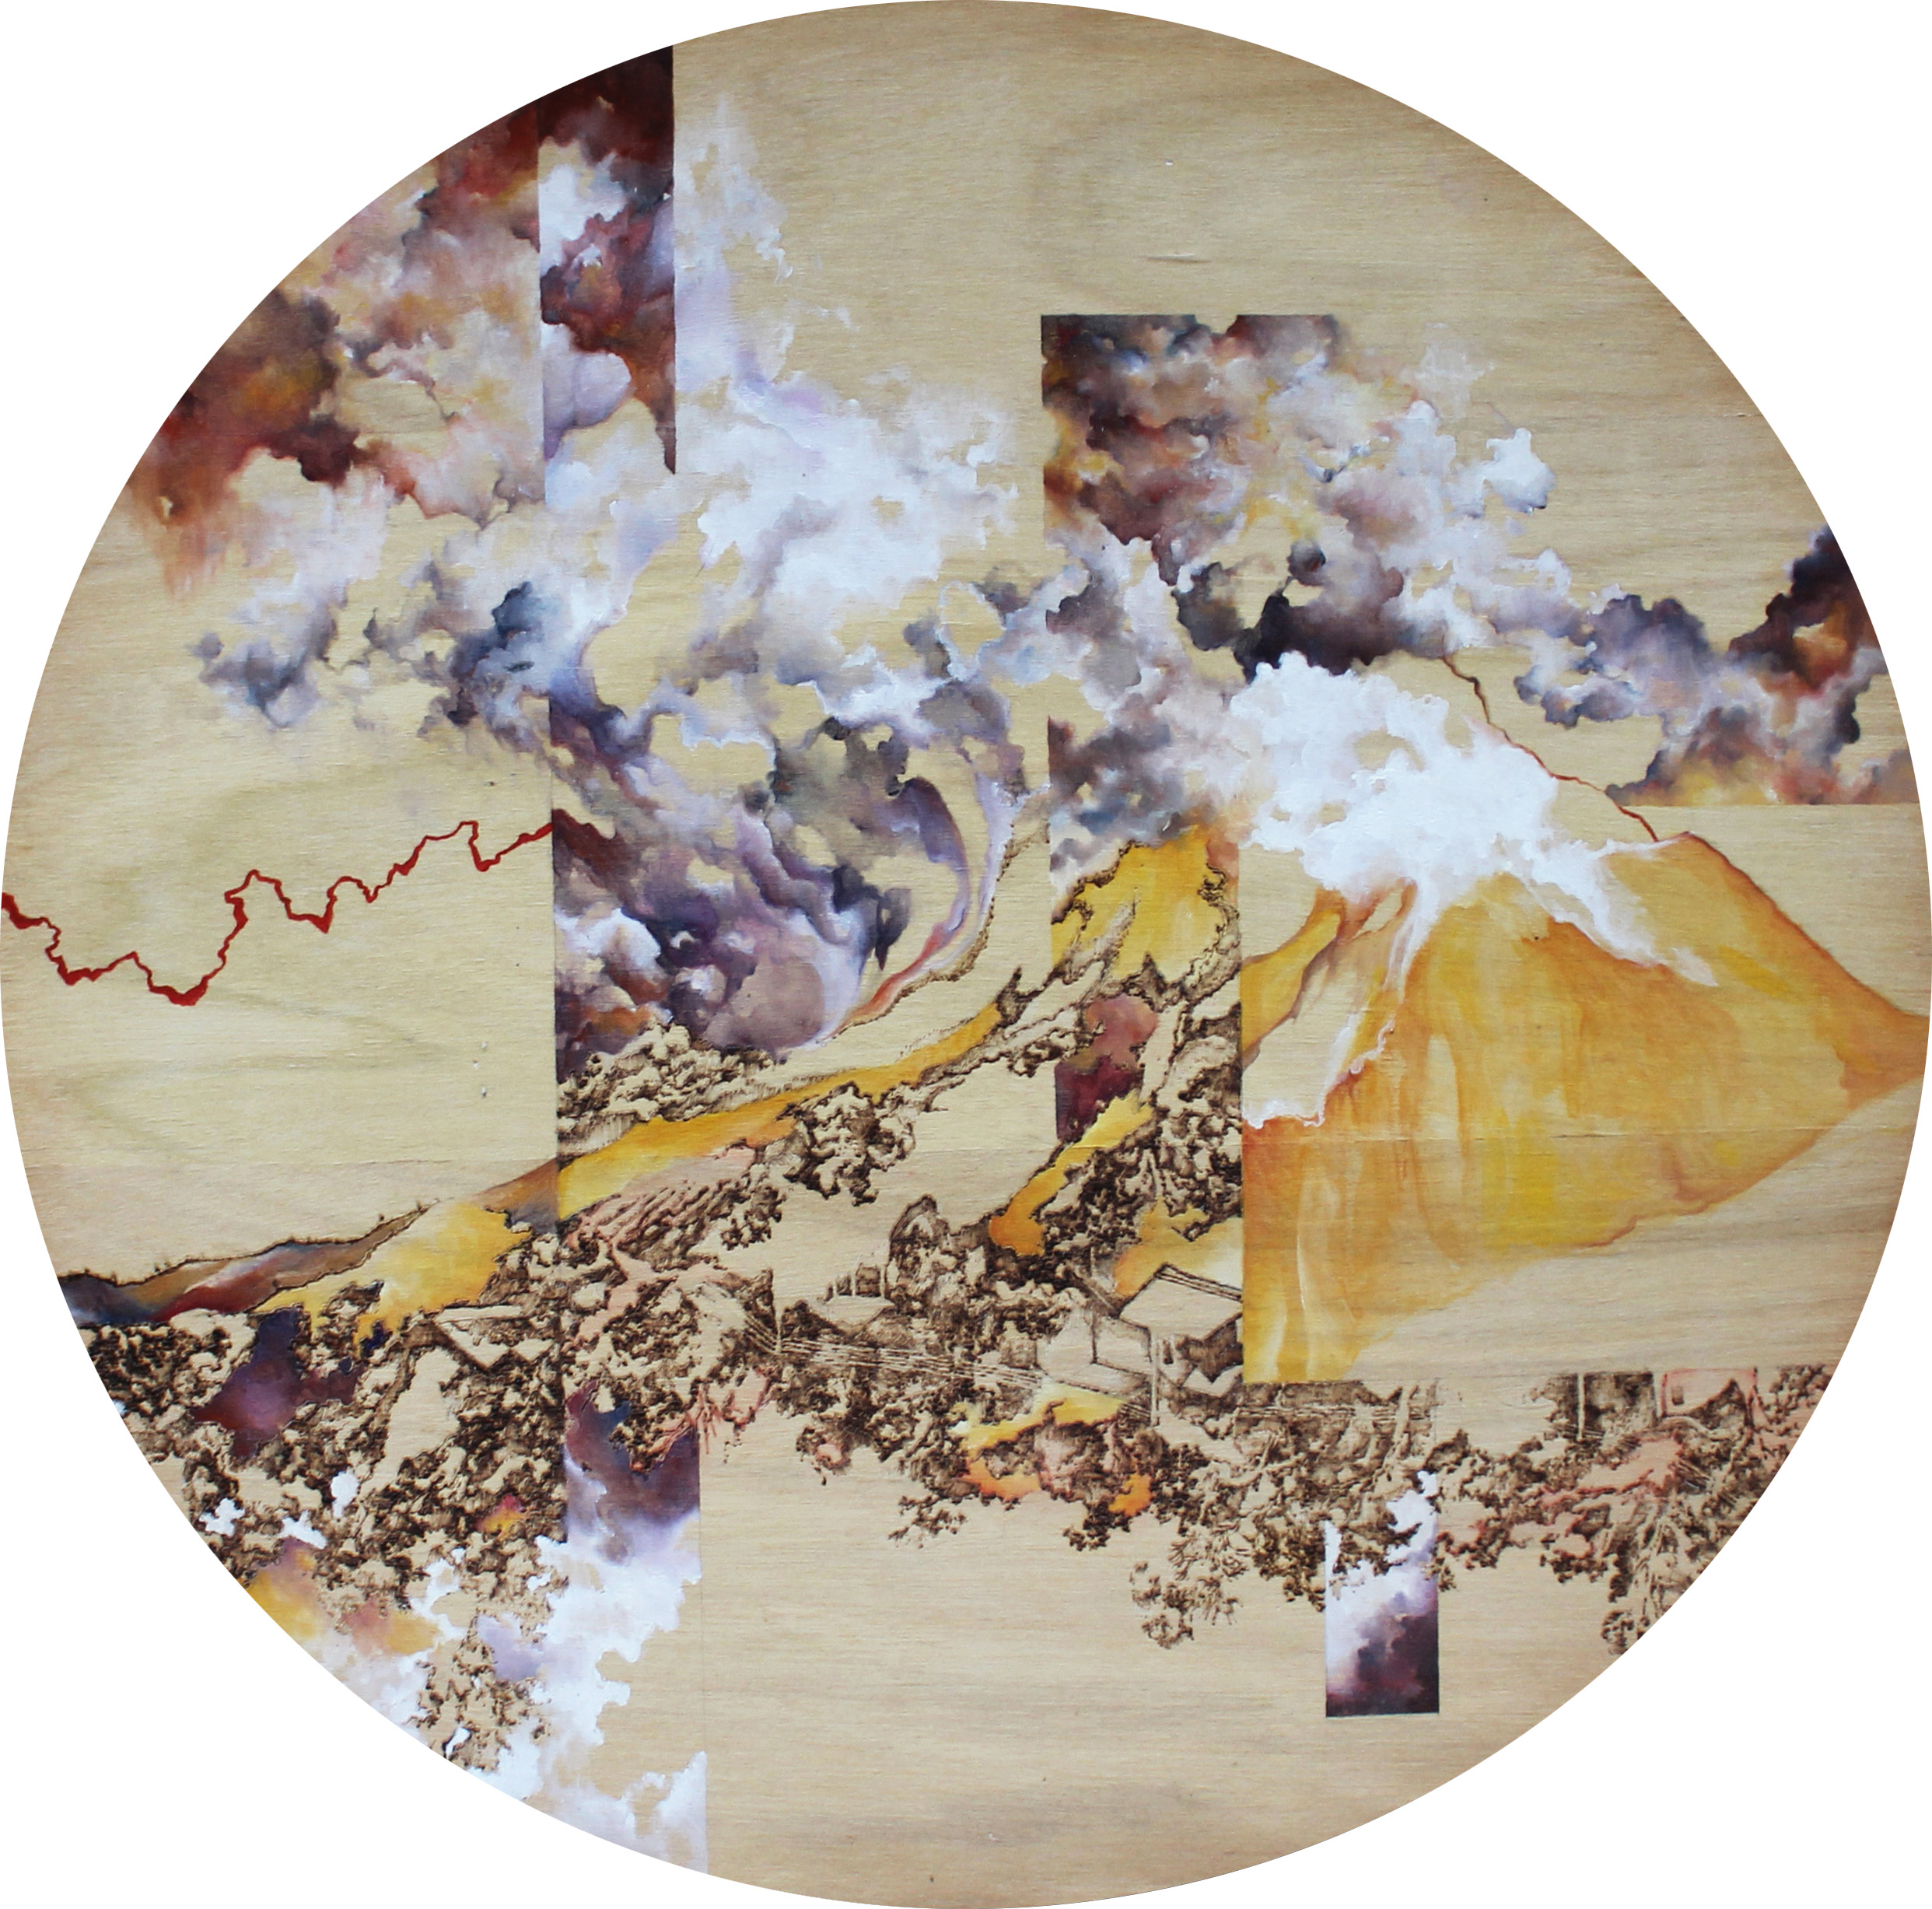 Michelle Loa Kum Cheung, Quiet Rebellion, Oil and pyrography on wood, 51cm (diameter) x 3cm (depth),  http://www.michellelkc.com